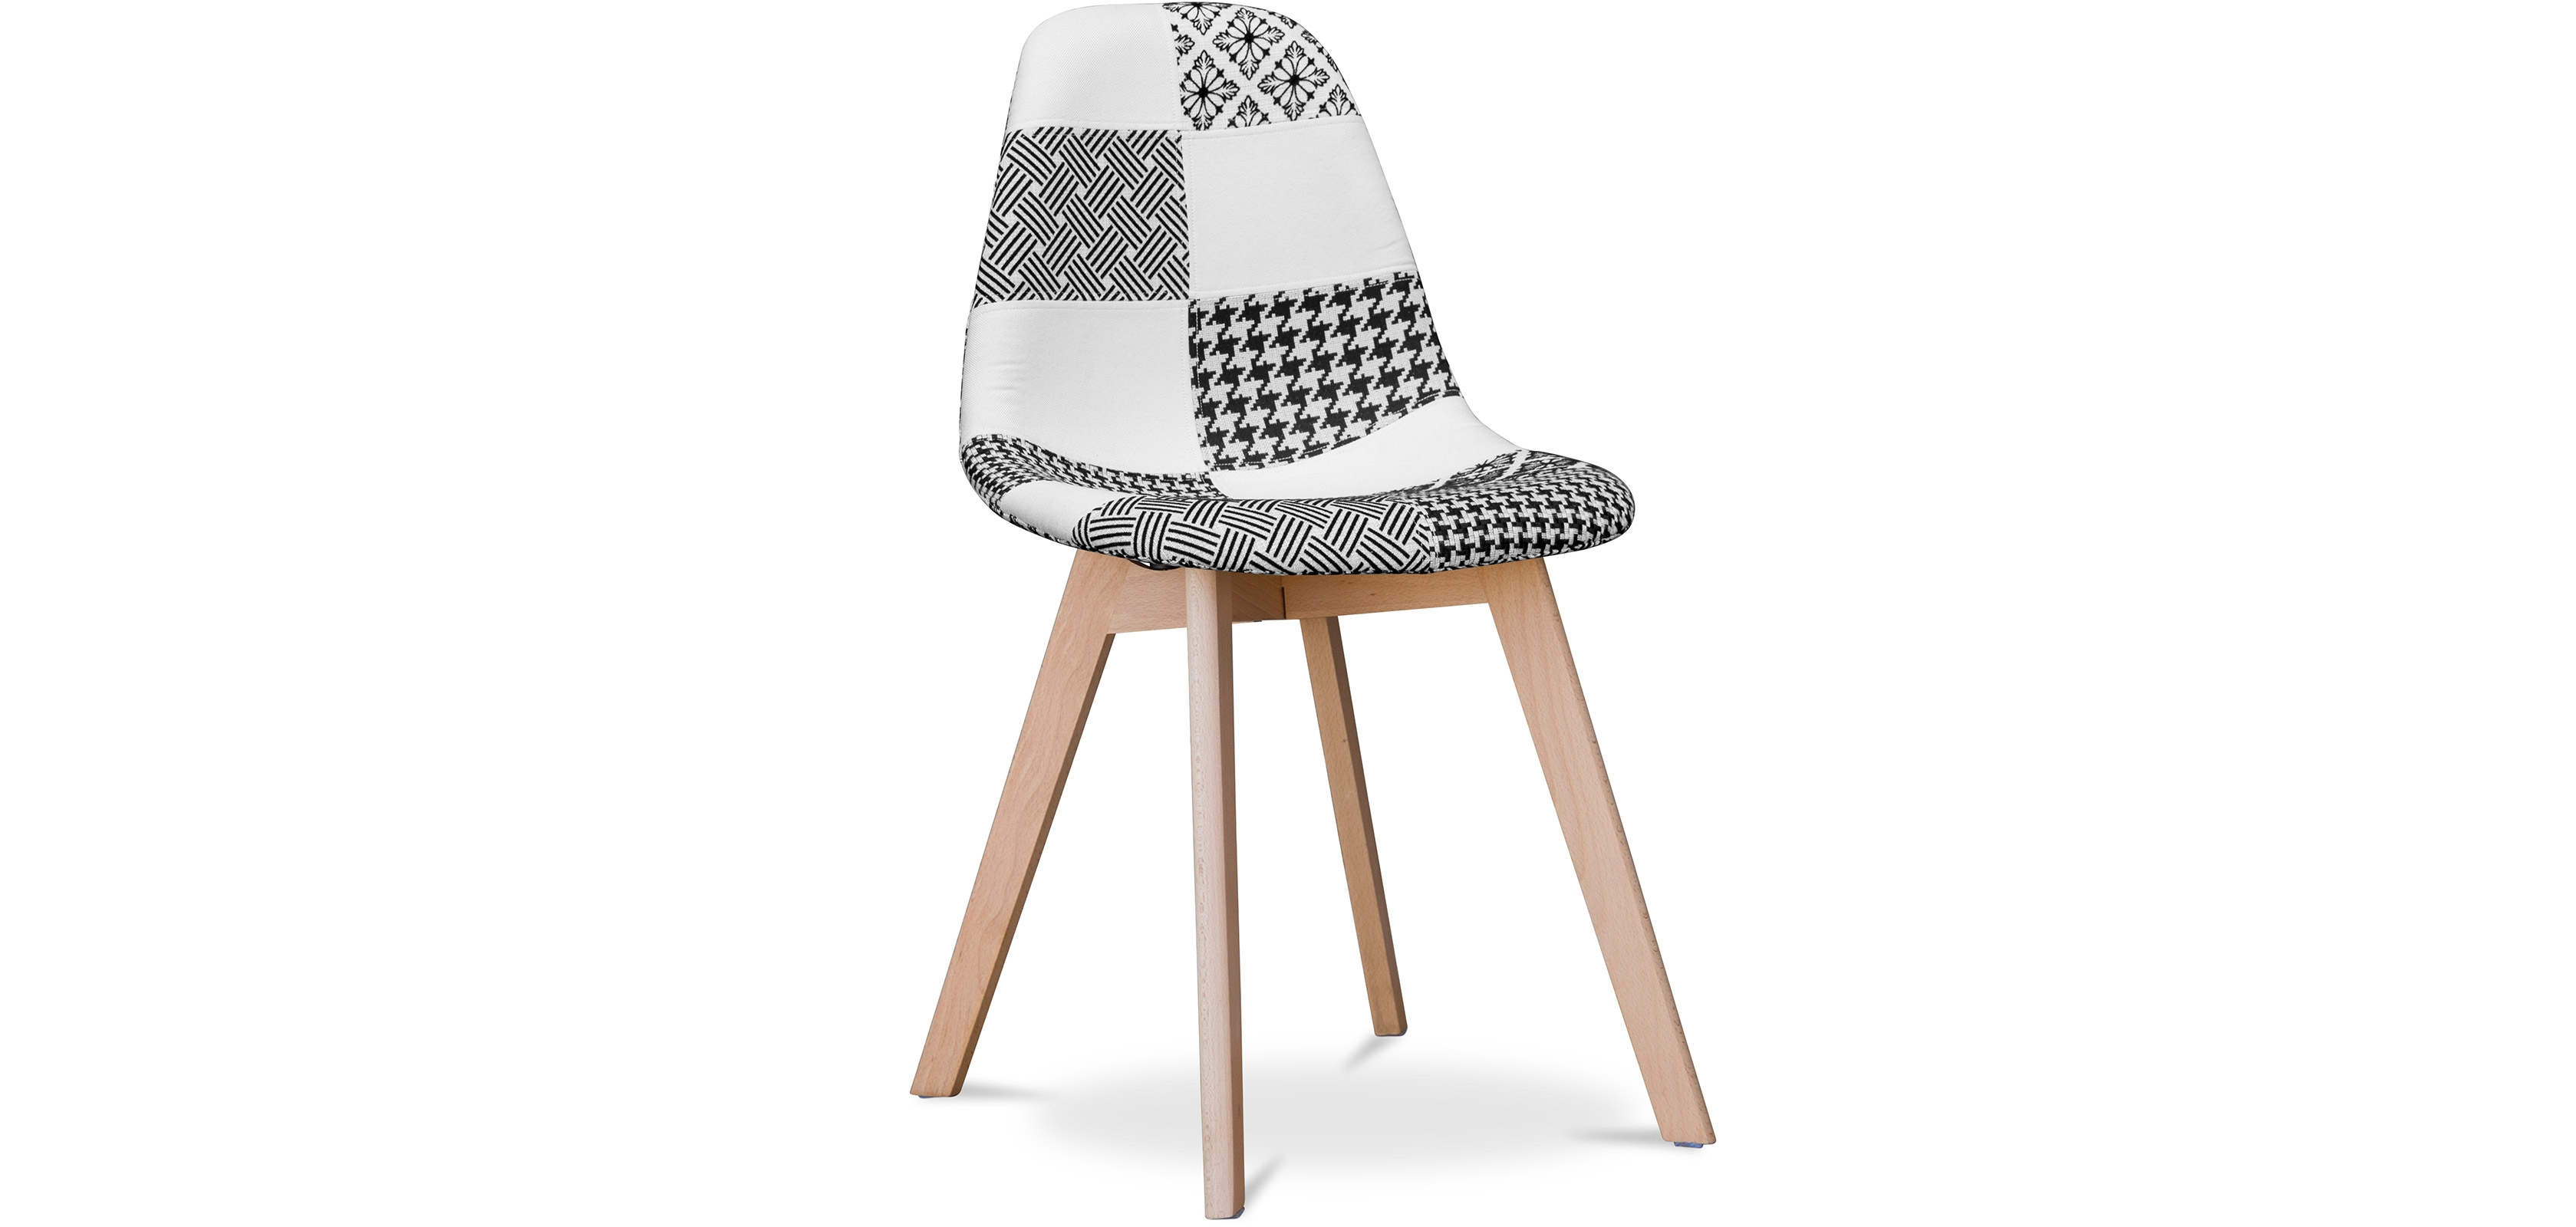 Buy Design Deswood Chair White and black - Patchwork Max White / Black 59270 - in the UK